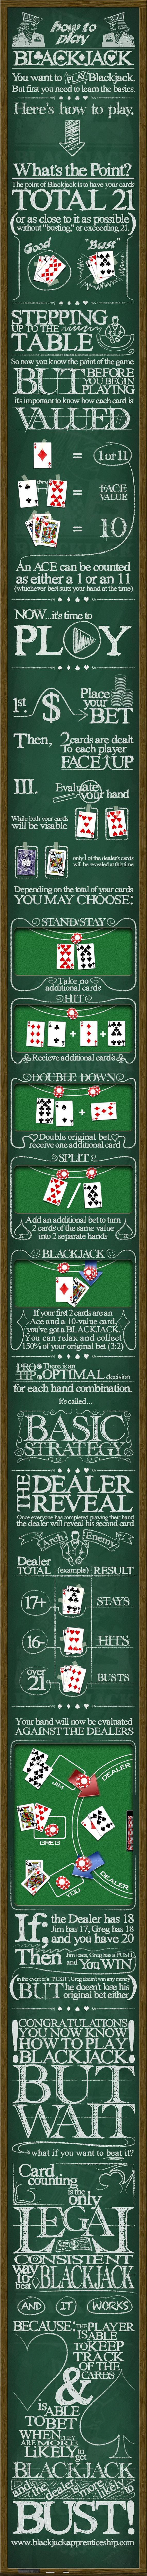 How to Play Blackjack [INFOGRAPHIC]